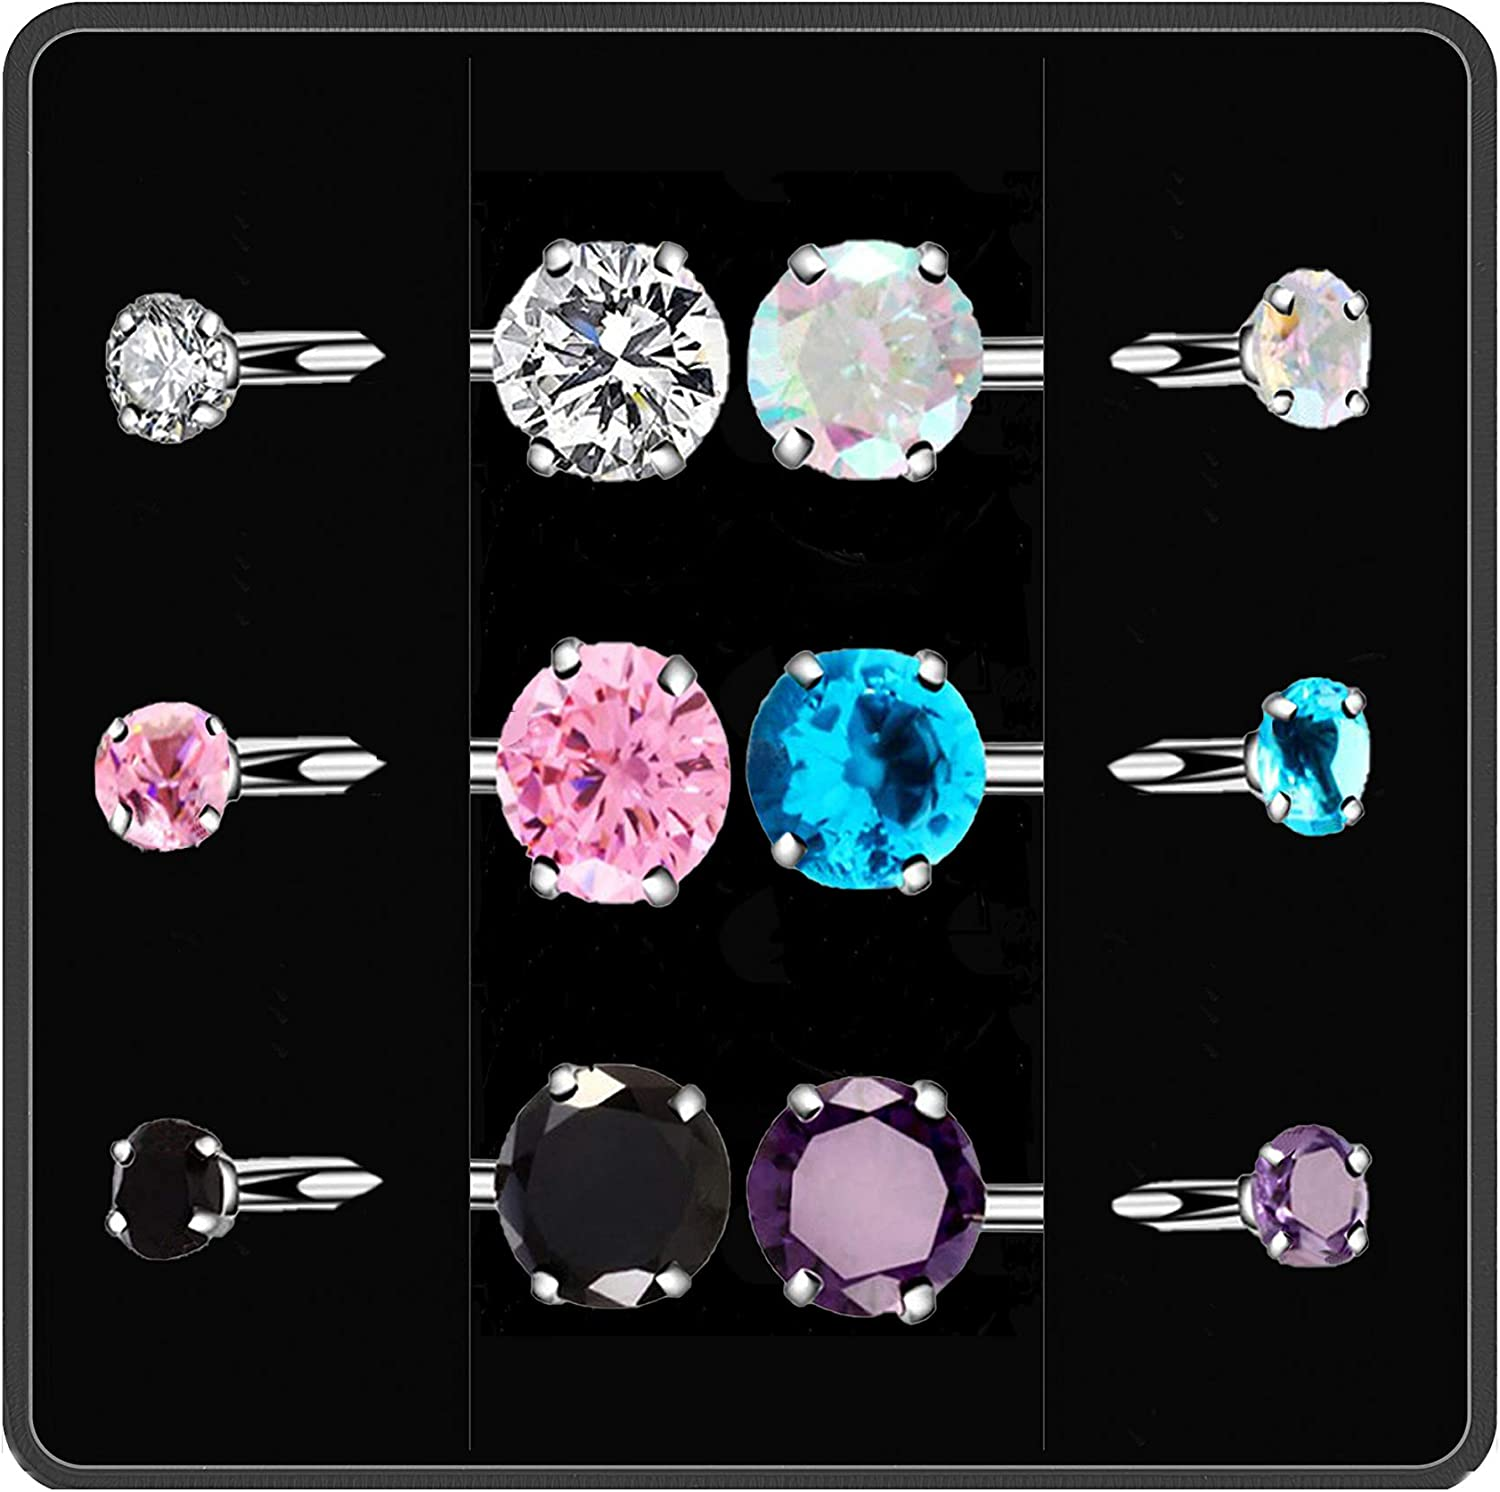 6 Pcs Belly Button Ring, Surgical Stainless Steel Belly Rings for Women Girls with Crystal Diamonds, Body Piercing Round Cubic Zirconia Navel Barbell Stud as Ideal Jewelry Set Gift or Daily Wear